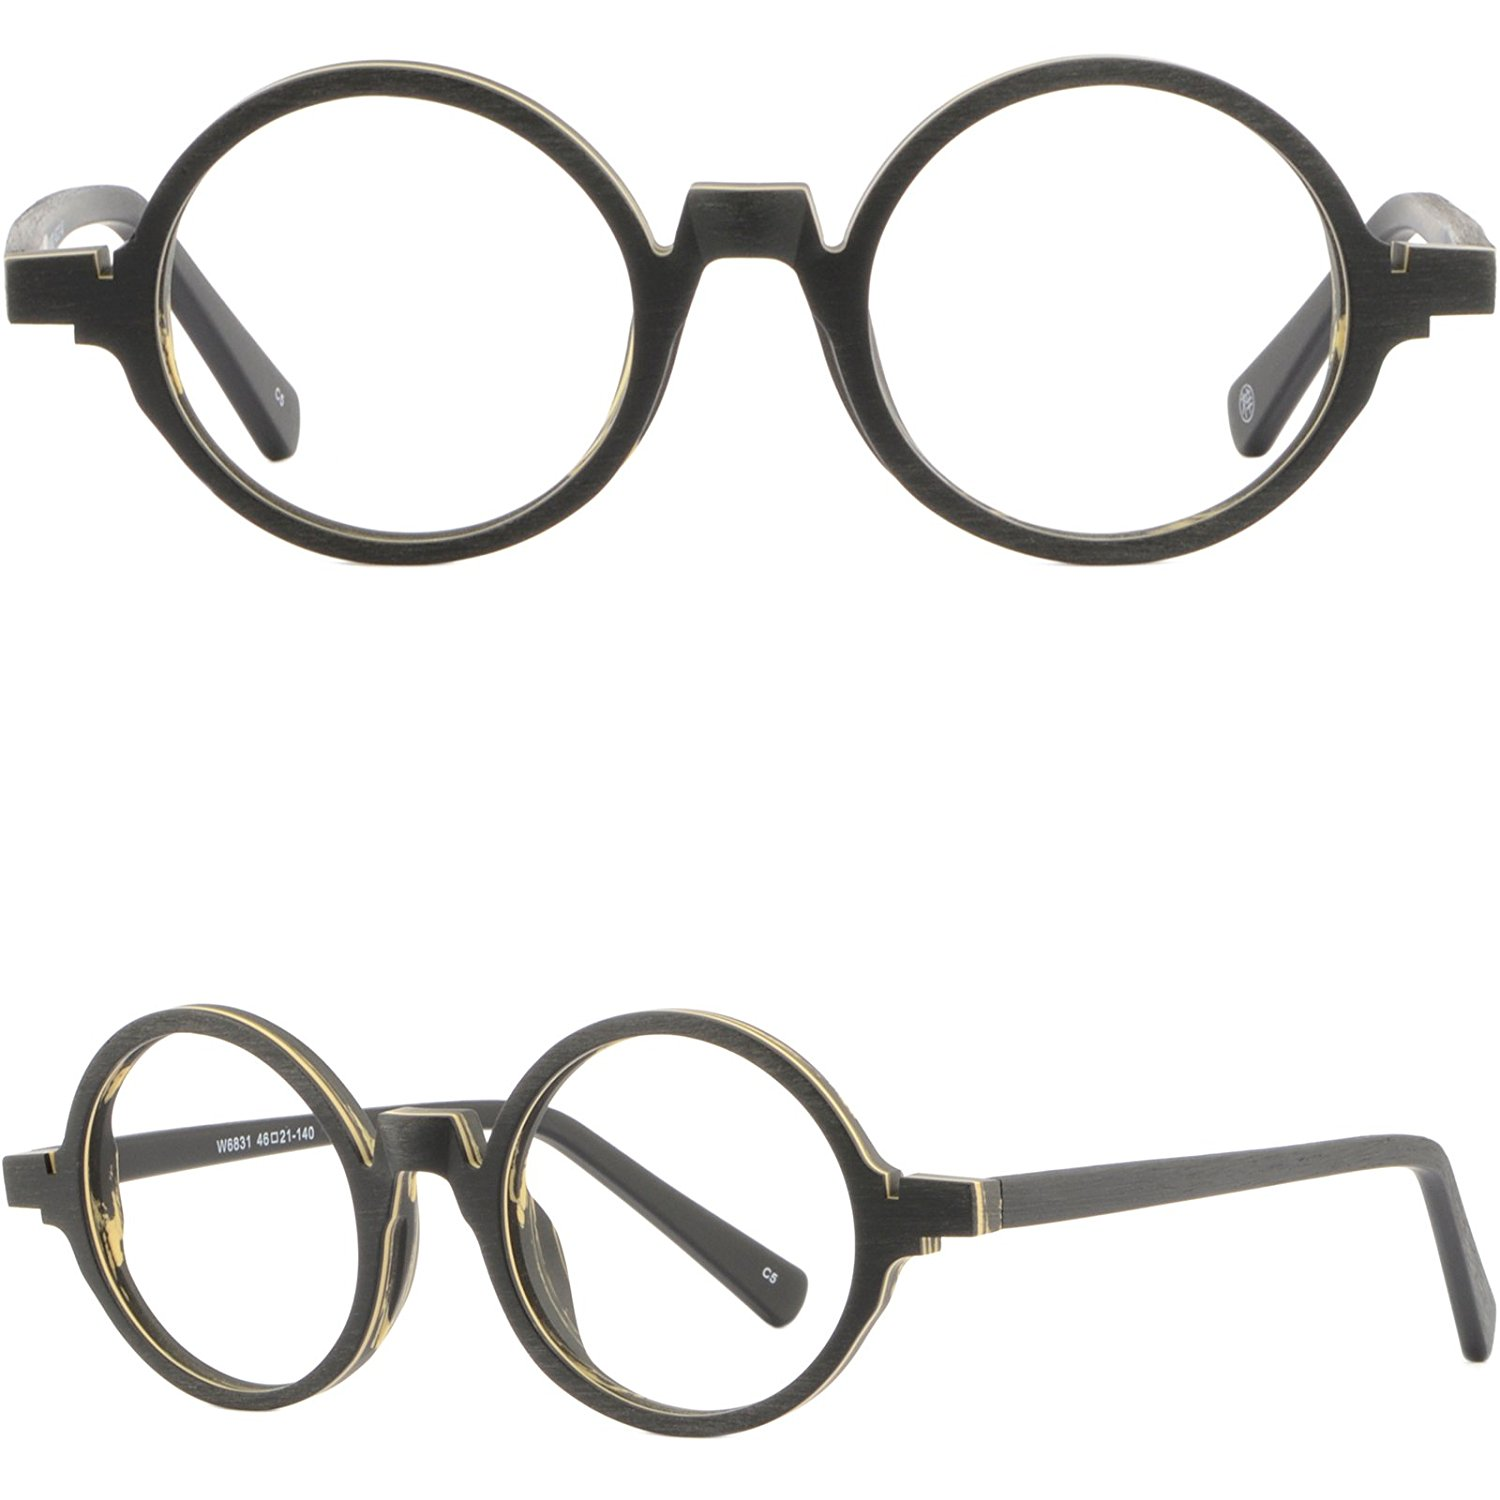 5d3ebce83fe2 Get Quotations · Small Narrow Round Acetate Retro Frames Vintage Glasses  Wood Grain Texture Black